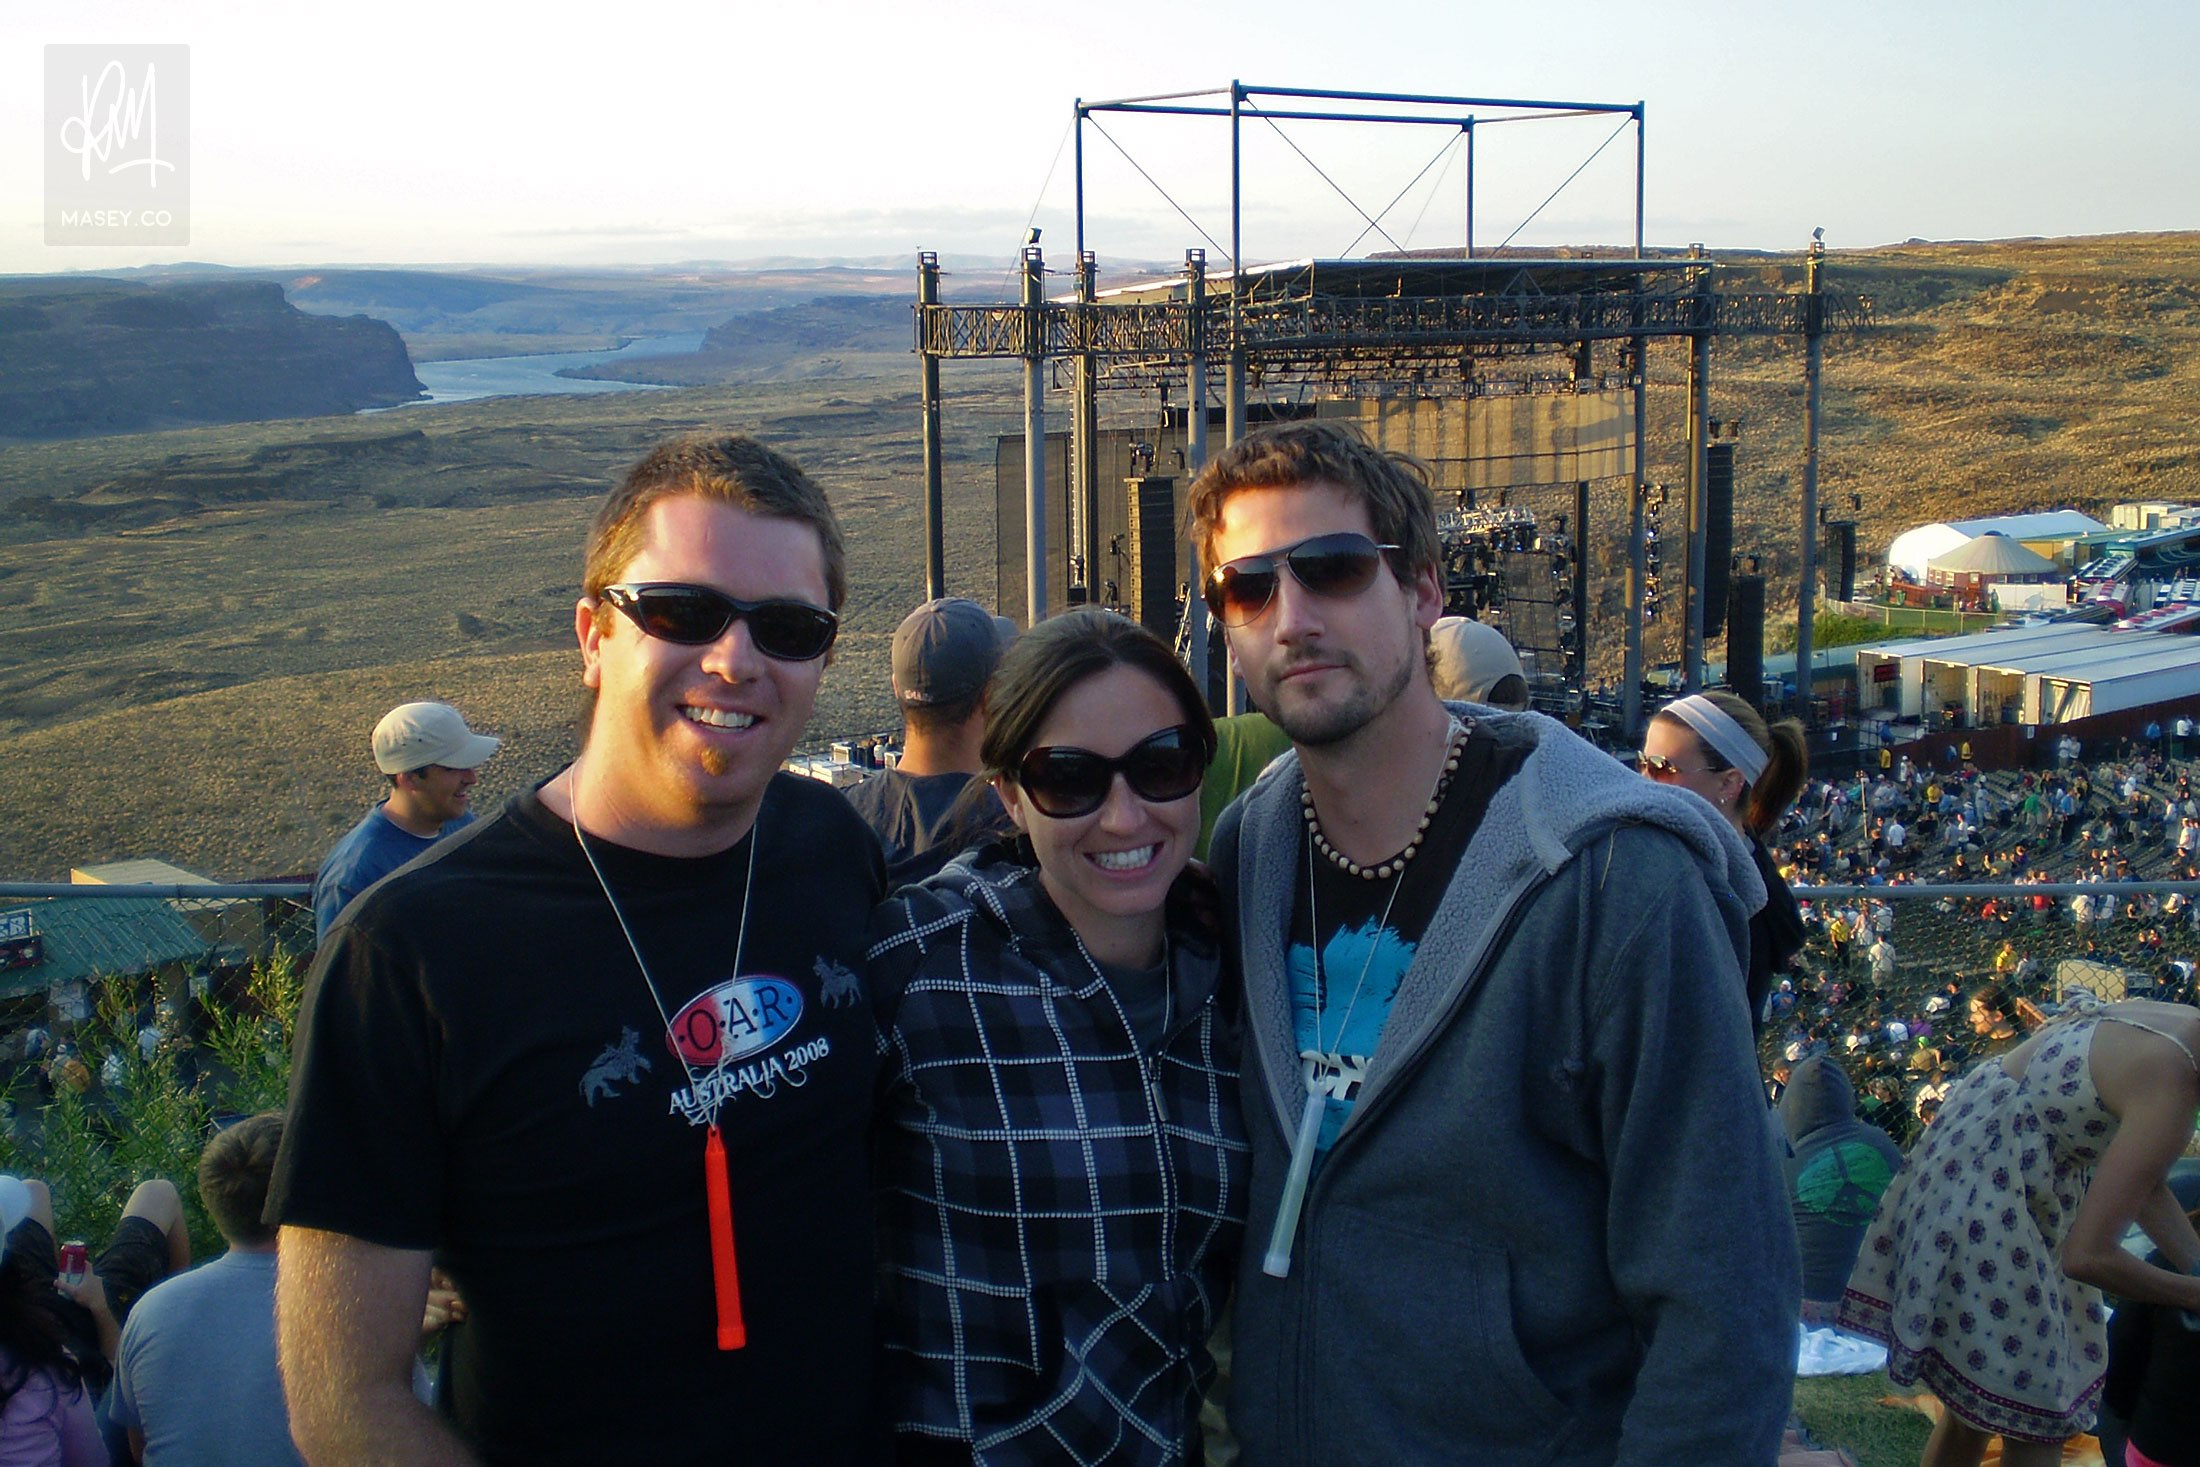 OAR and DMB play The Gorge!